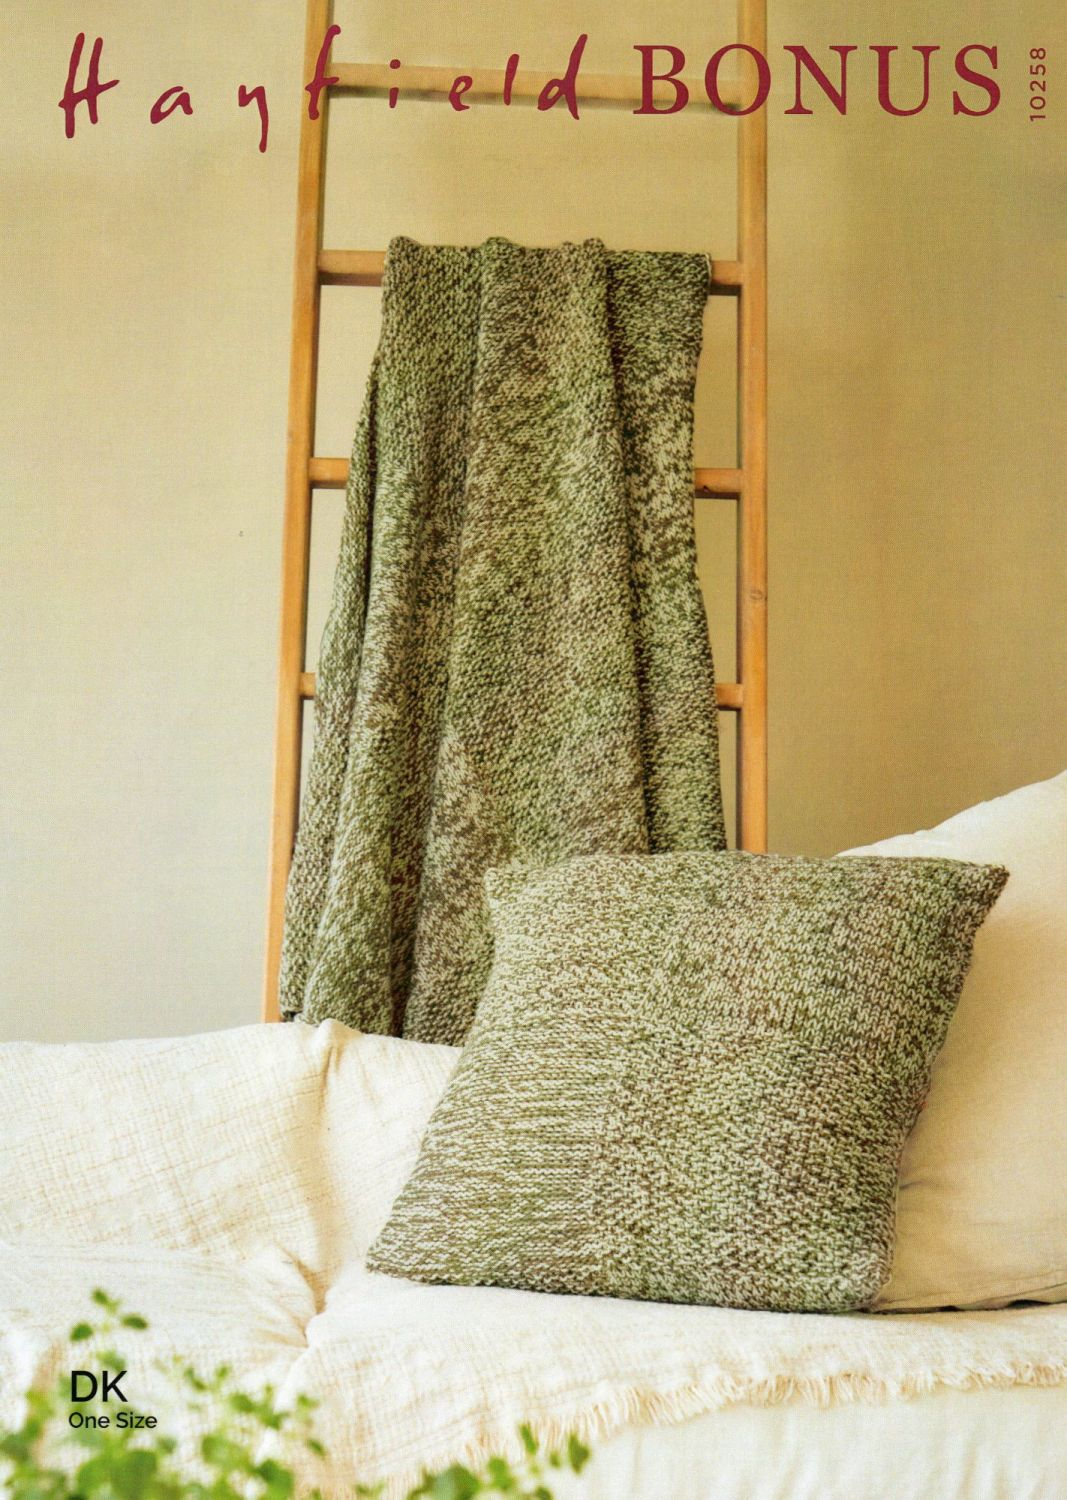 10258 - BLANKET AND CUSHION BY HAYFIELD IN DOUBLE KNIT